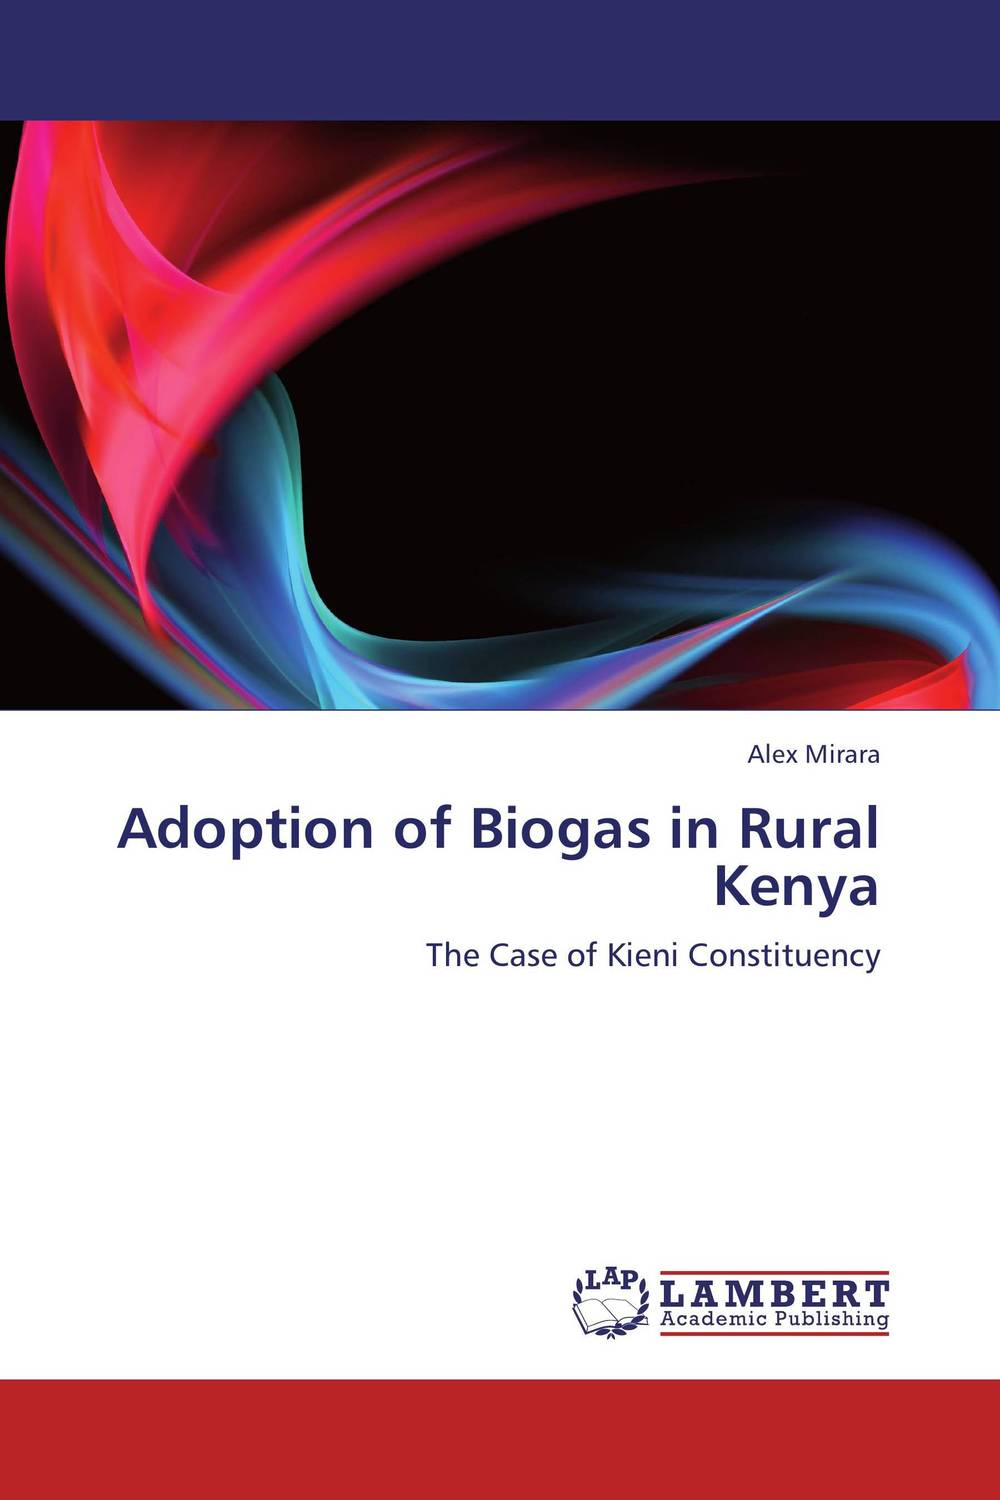 Adoption of Biogas in Rural Kenya biogas energy production and use